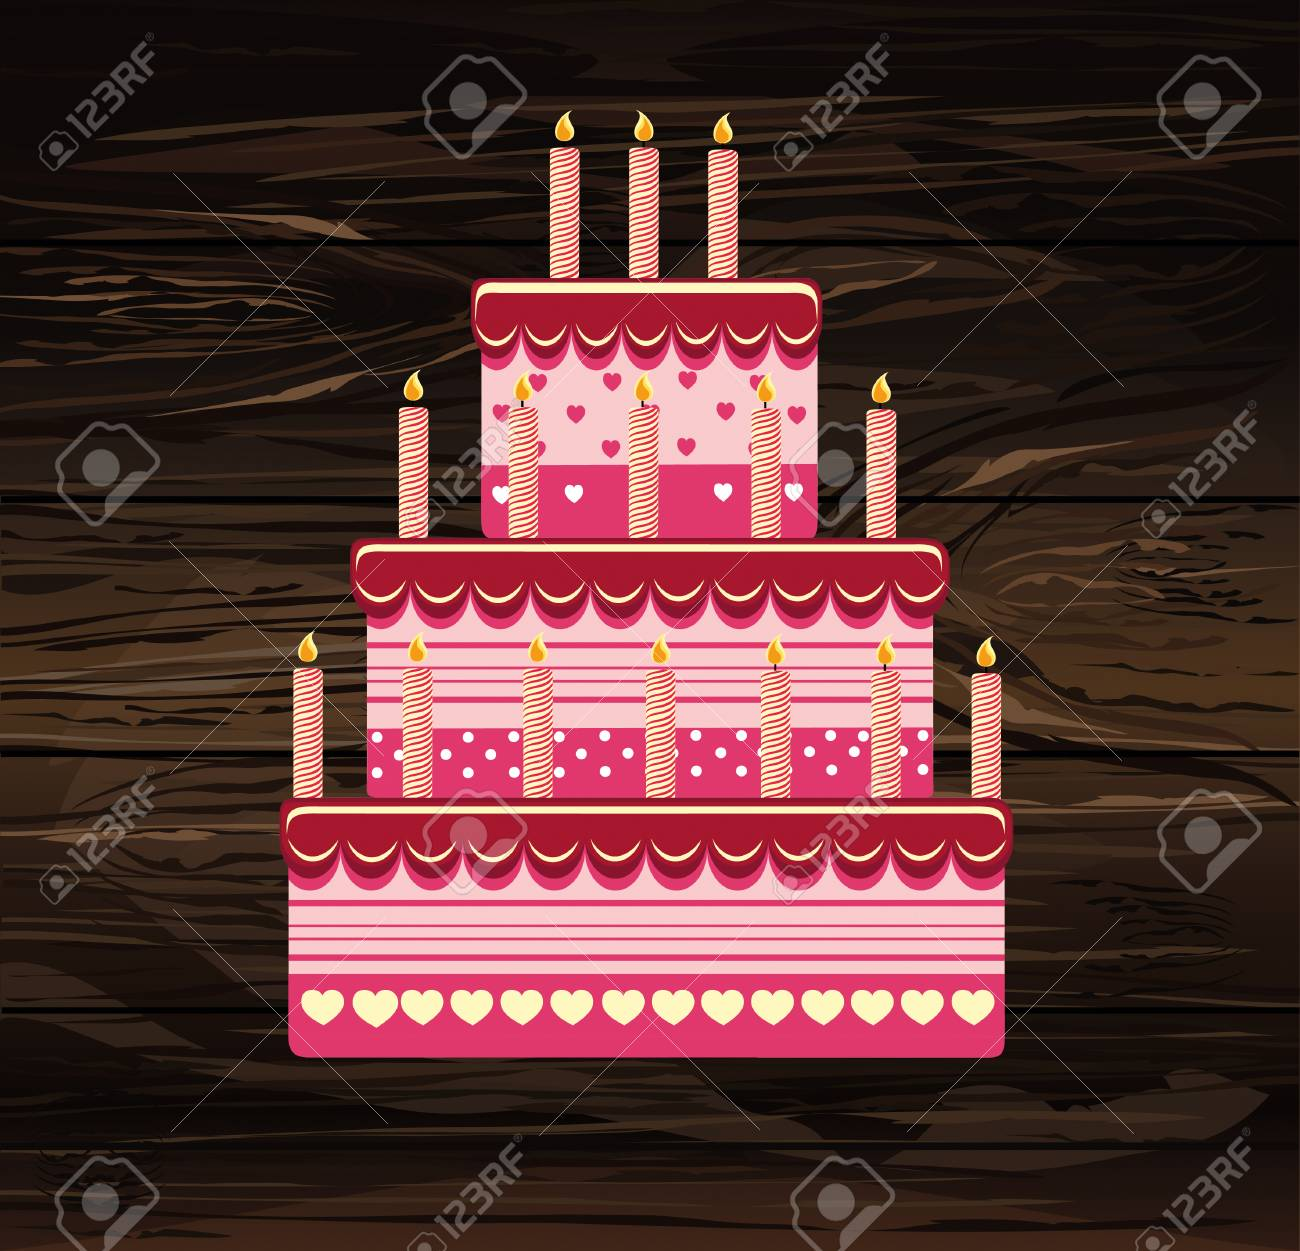 Festive Big Cake Happy Birthday Greeting Card Or Invitation For A Holiday Vector